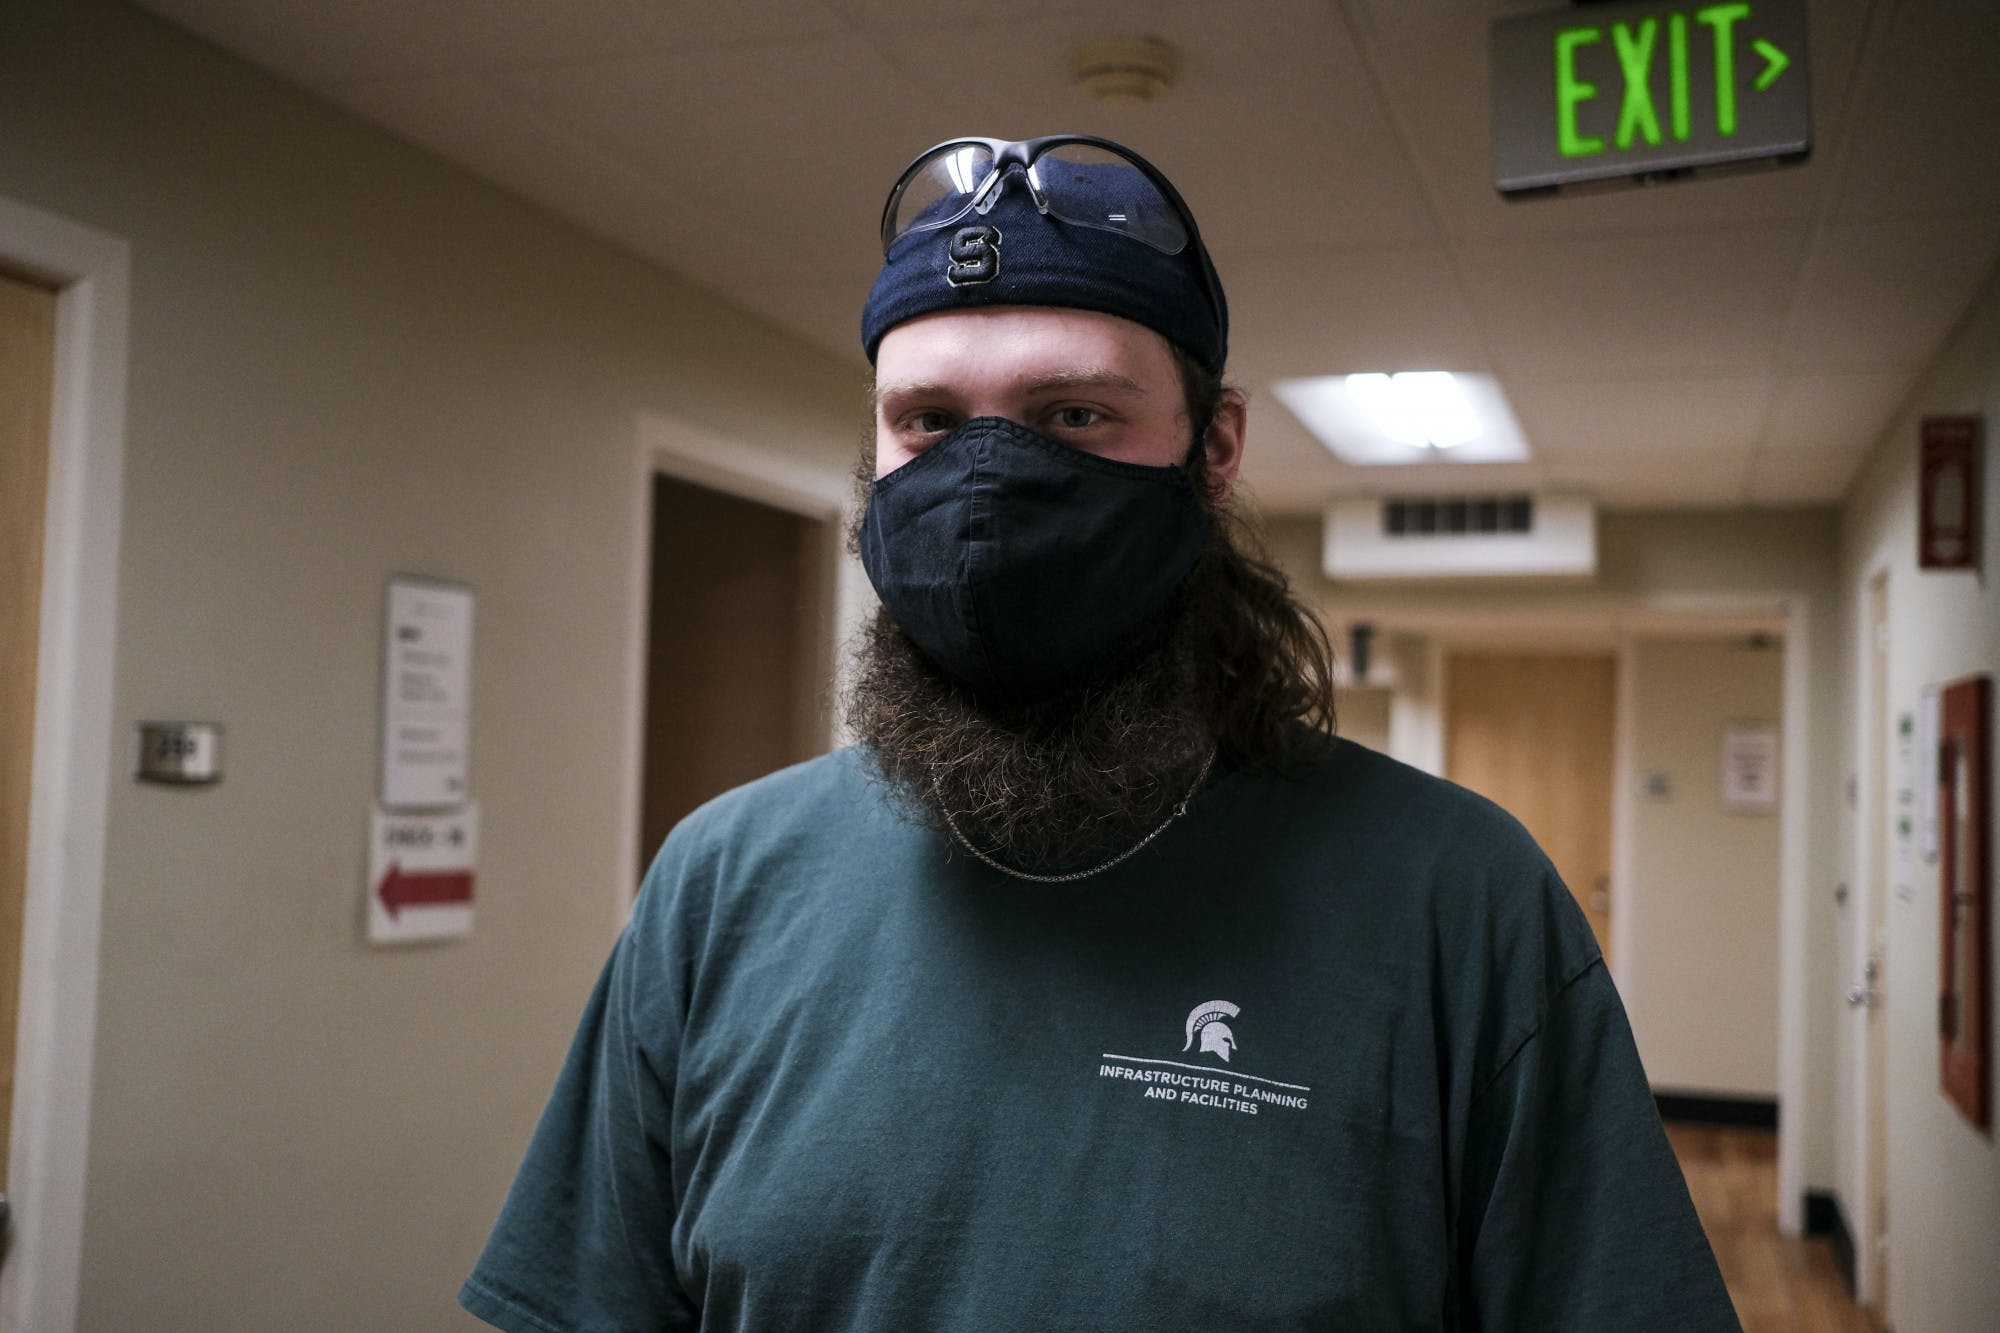 A bearded person wearing a face mask and a backwards cap with eye protection glasses resting on it stands in a hallway posing for a picture.